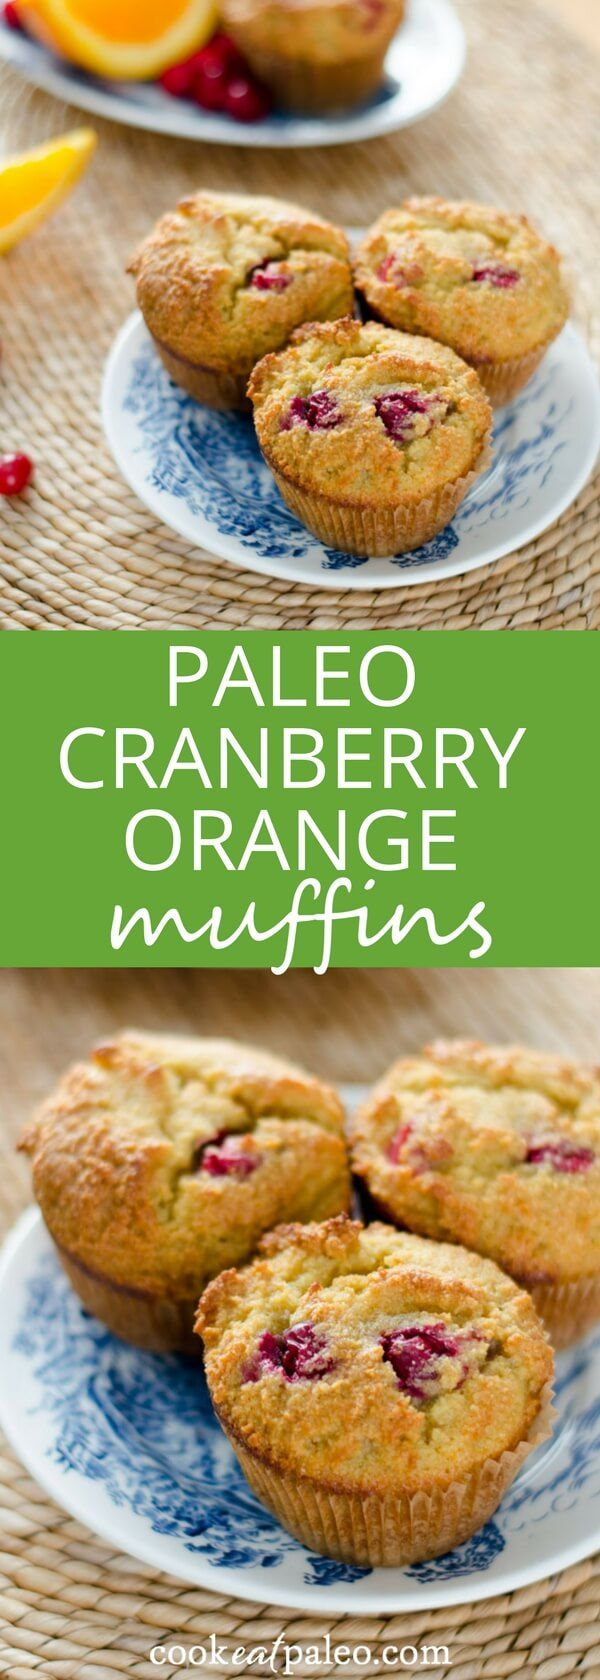 This quick and easy paleo cranberry orange muffins recipe is gluten-free and grain-free. A wonderfultreat you can enjoy any time of the year via @cookeatpaleo